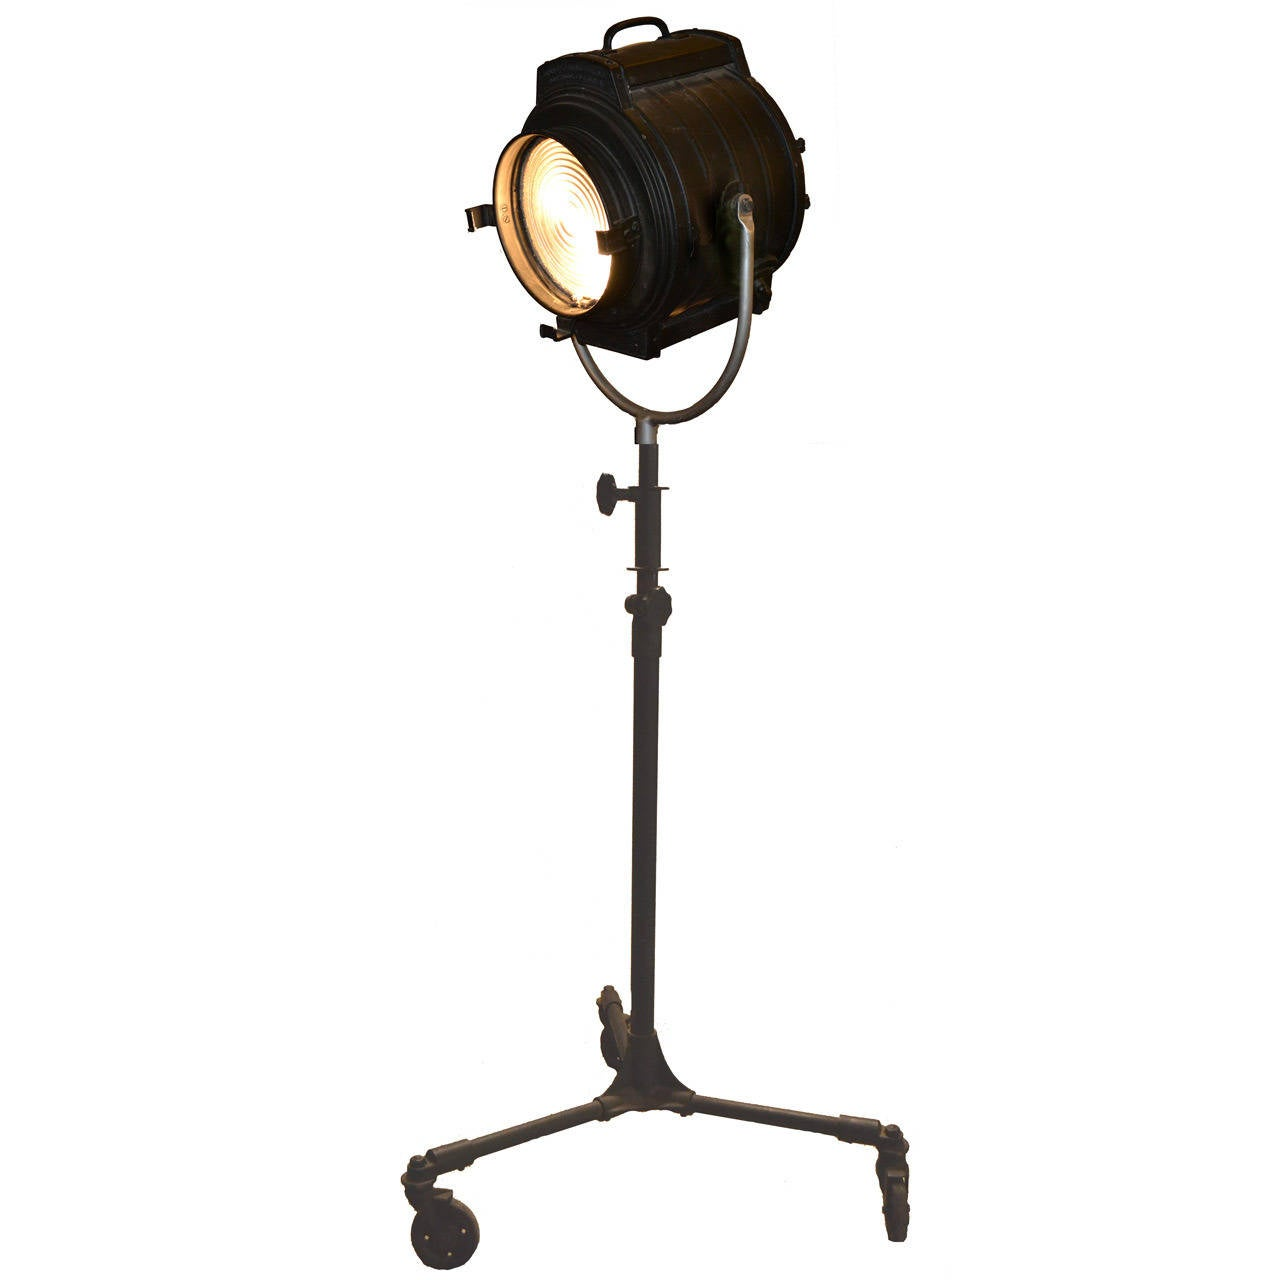 Bardwell Mcalister Studio Movie Keg Light Floor Lamp Circa 1940